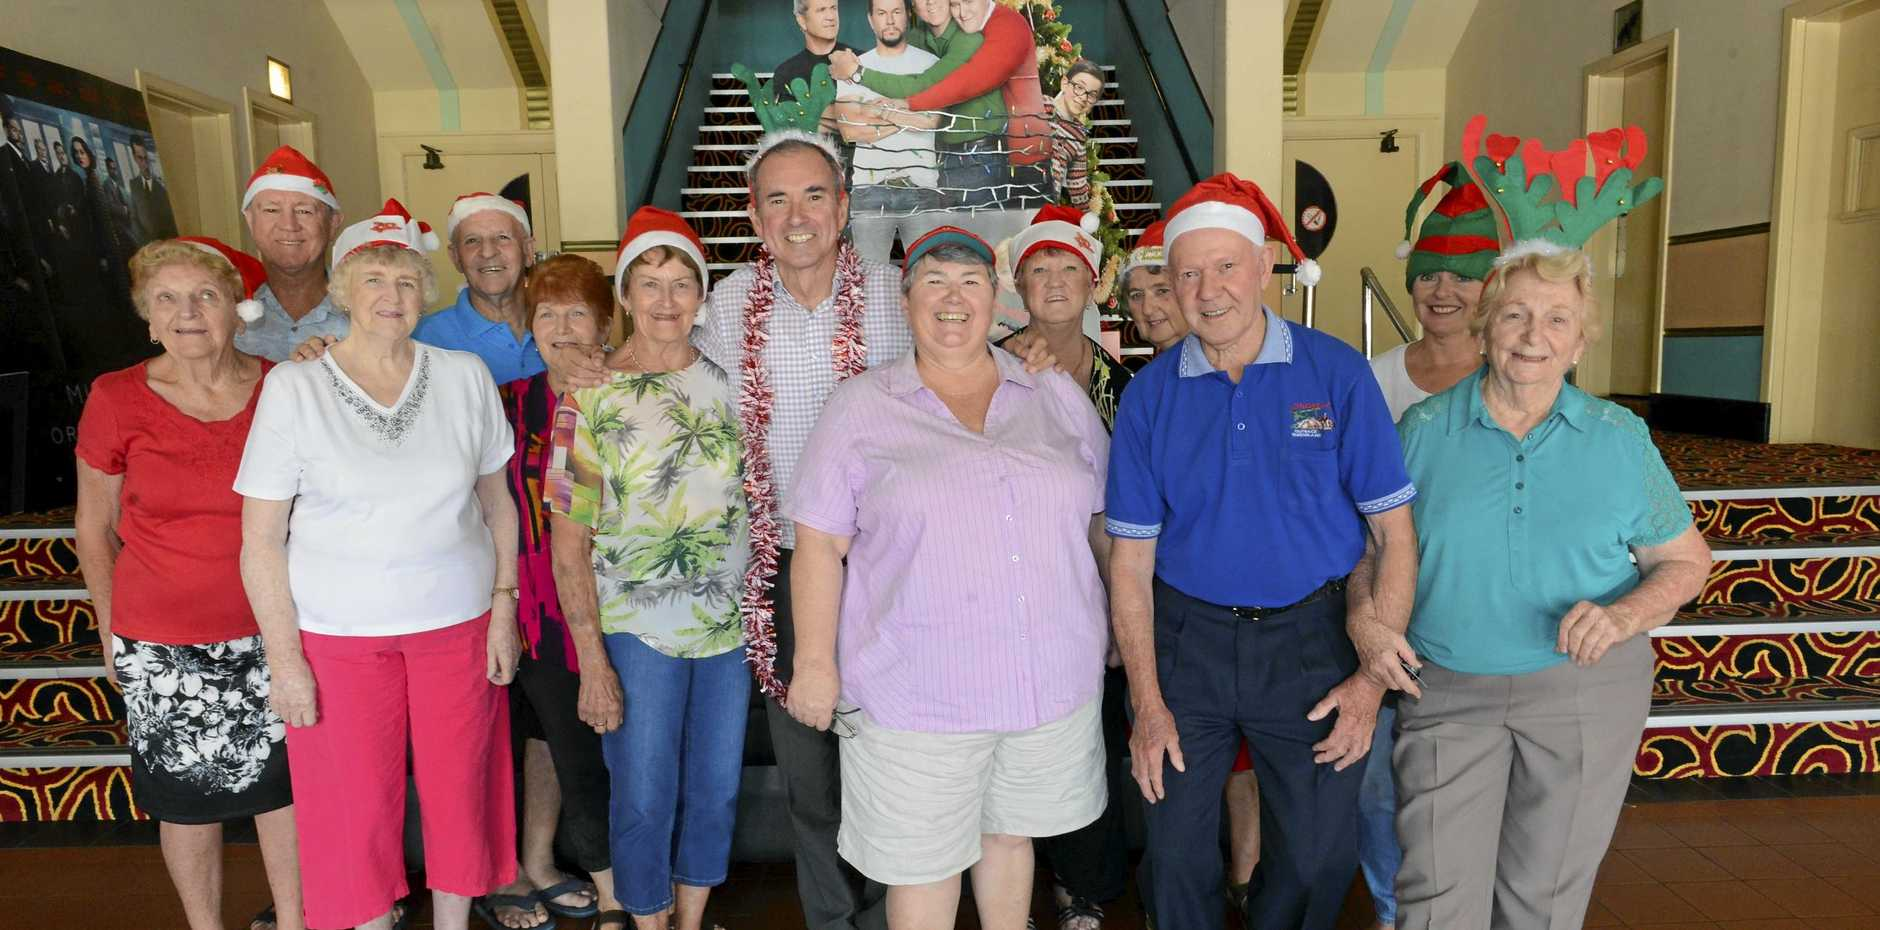 CHRISTMAS CHEER: Grafton senior citizens get into the festive spirit with Member for Clarence Chris Gulaptis in anticipation of the upcoming free concert at the Saraton Theatre featuring star of the stage Peter Cousens and country music artist Darren Coggan.